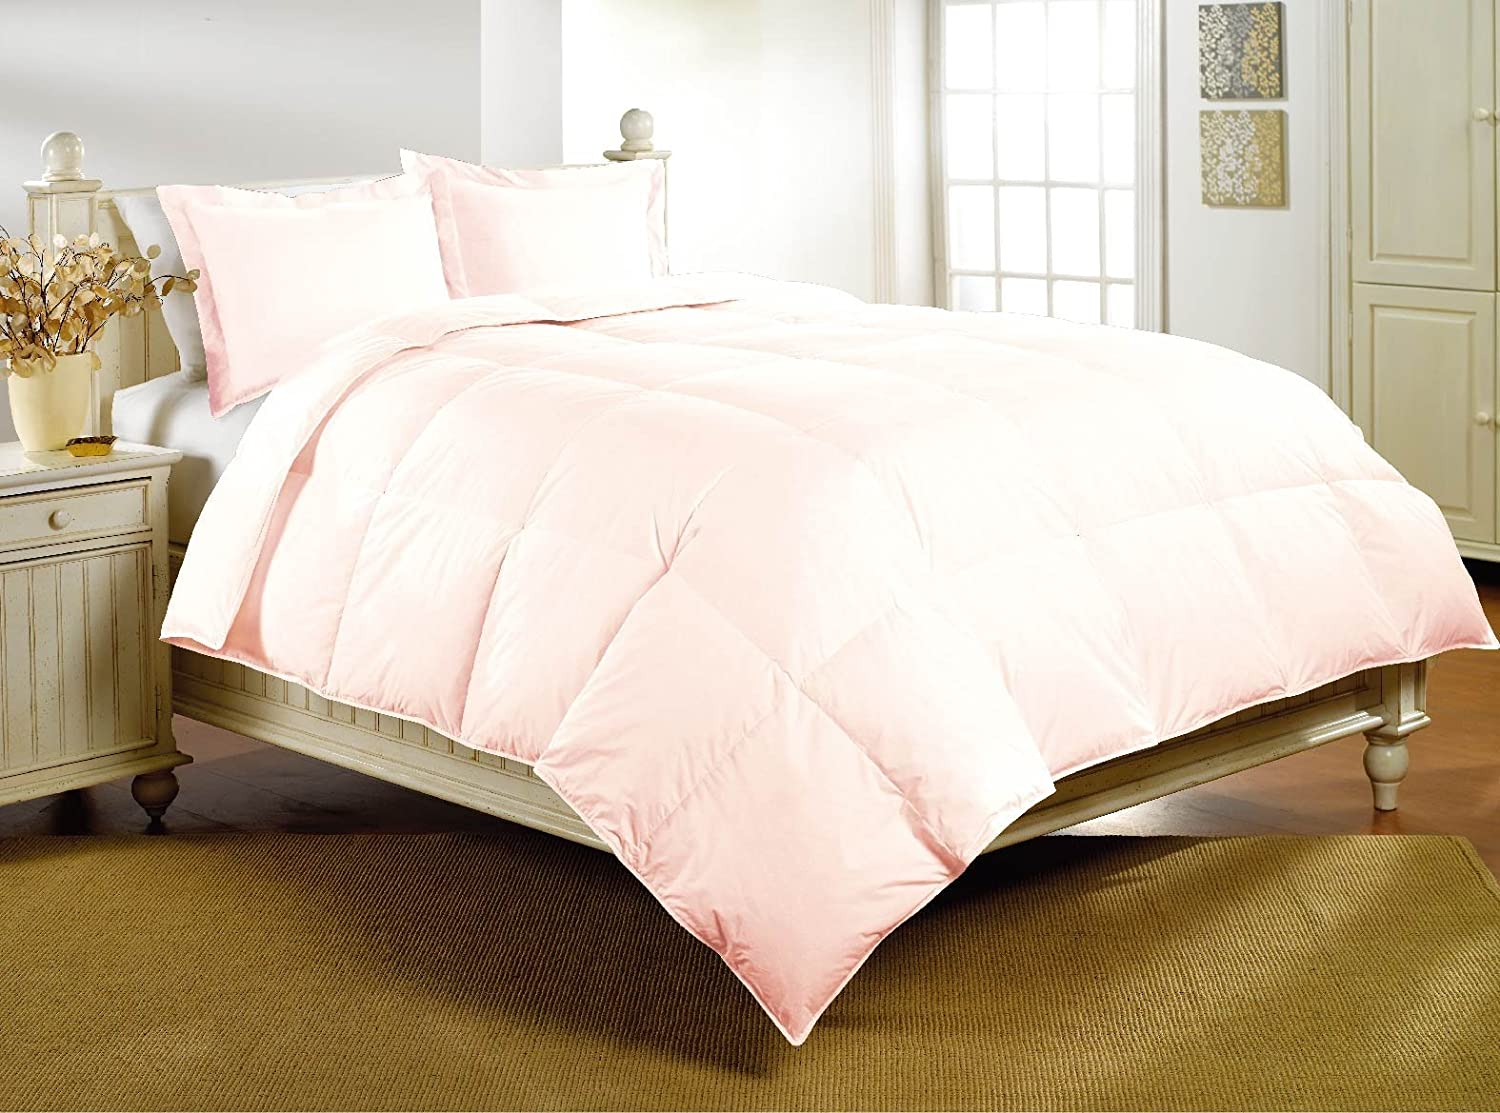 target swanky cushions bedding on urban pink bed girls hot twin outfitters about best cover manor pinterest blush king genial uk canada images ebay color bedspreadyatakortusu duvet comforter light piece muse dk ruffle hill